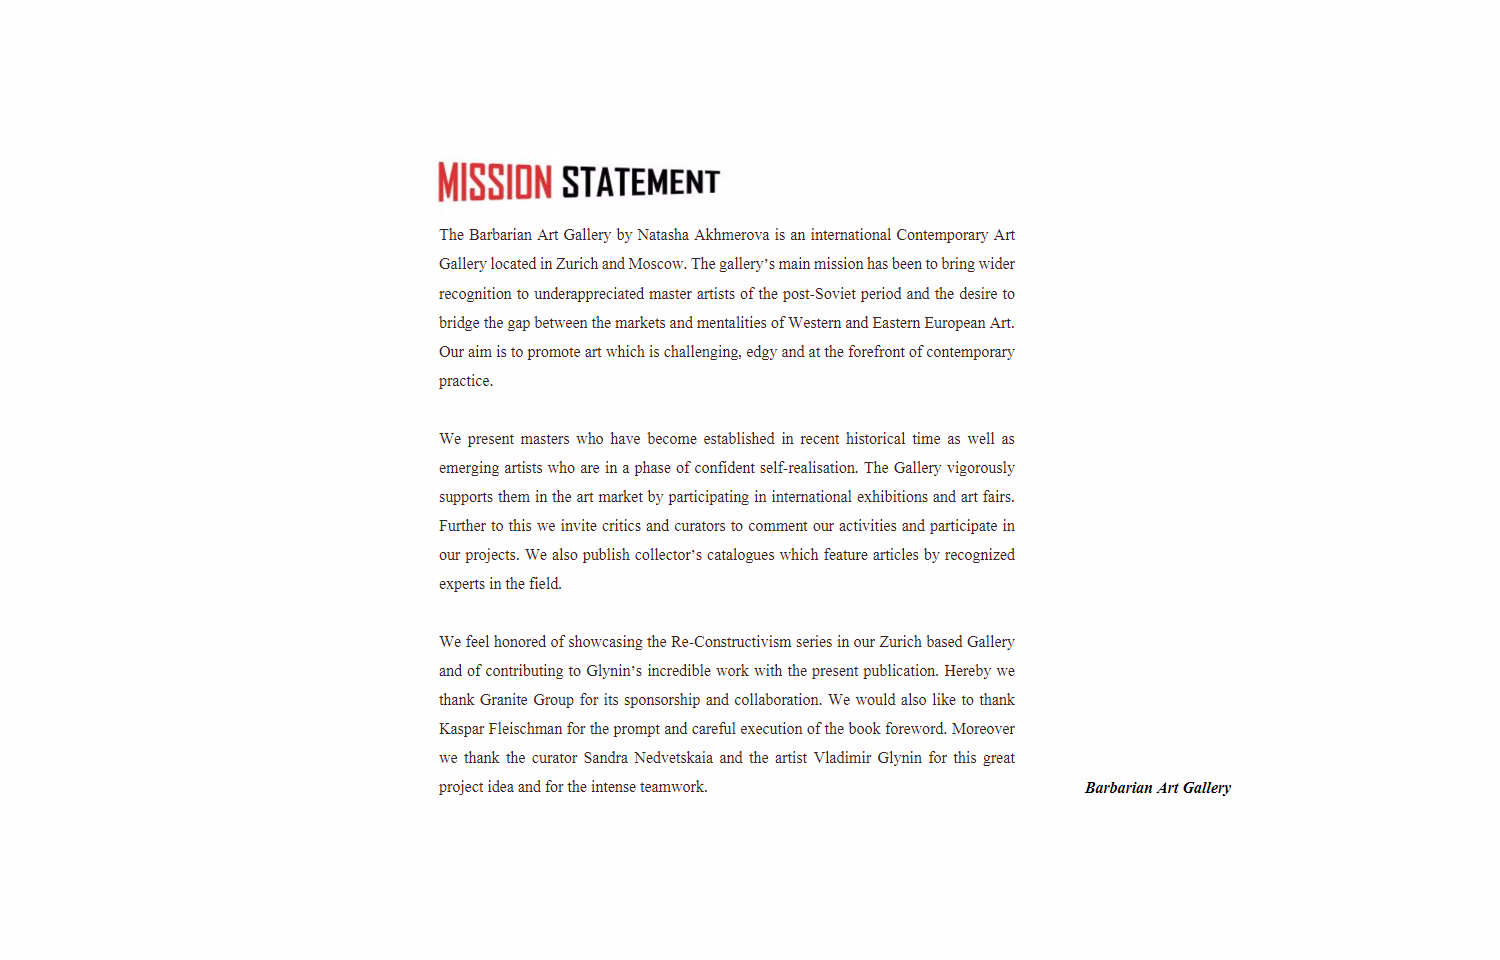 VG mission statement